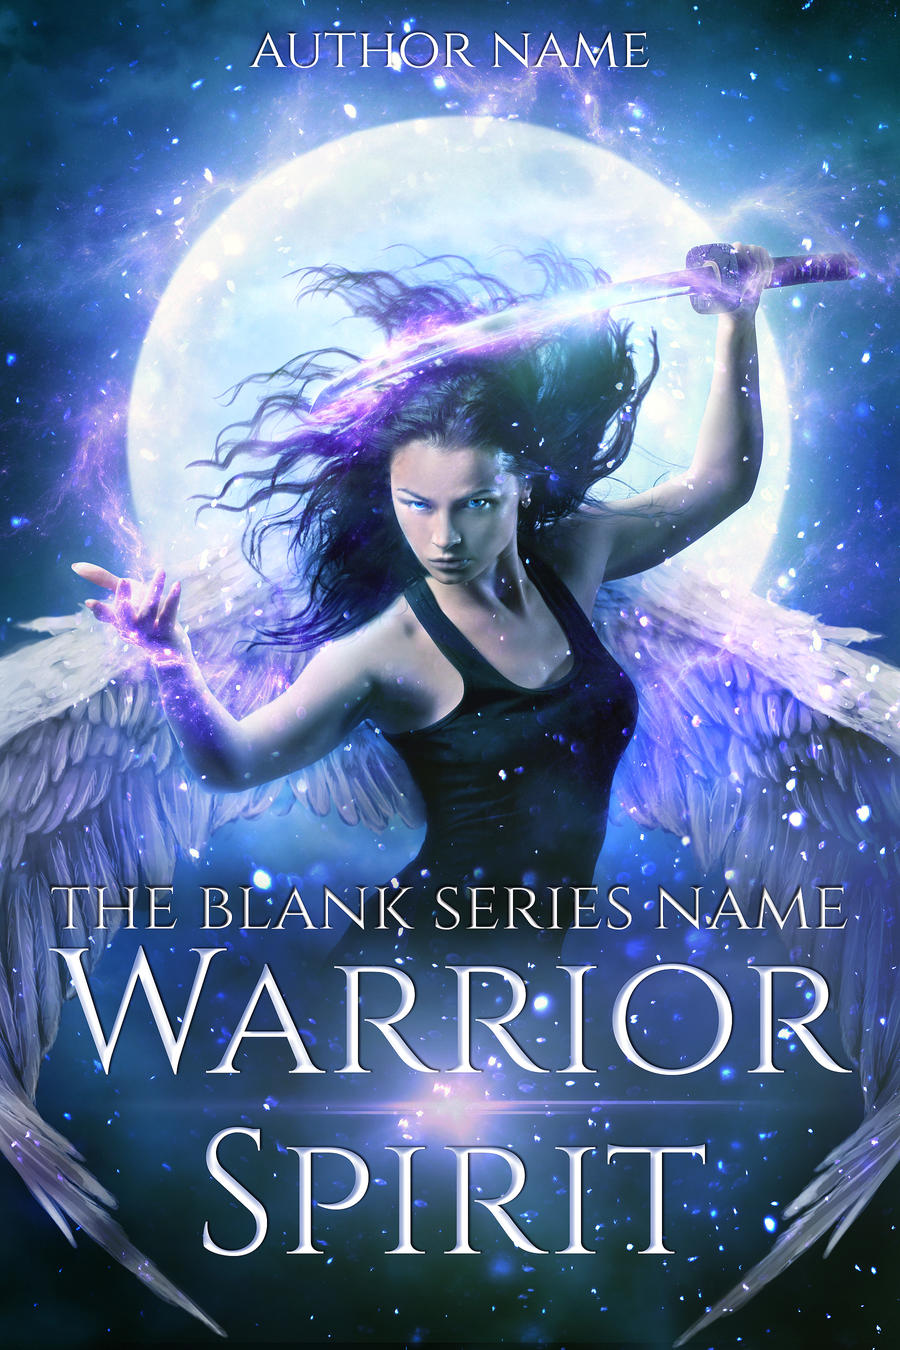 WARRIOR SPIRIT premade book cover